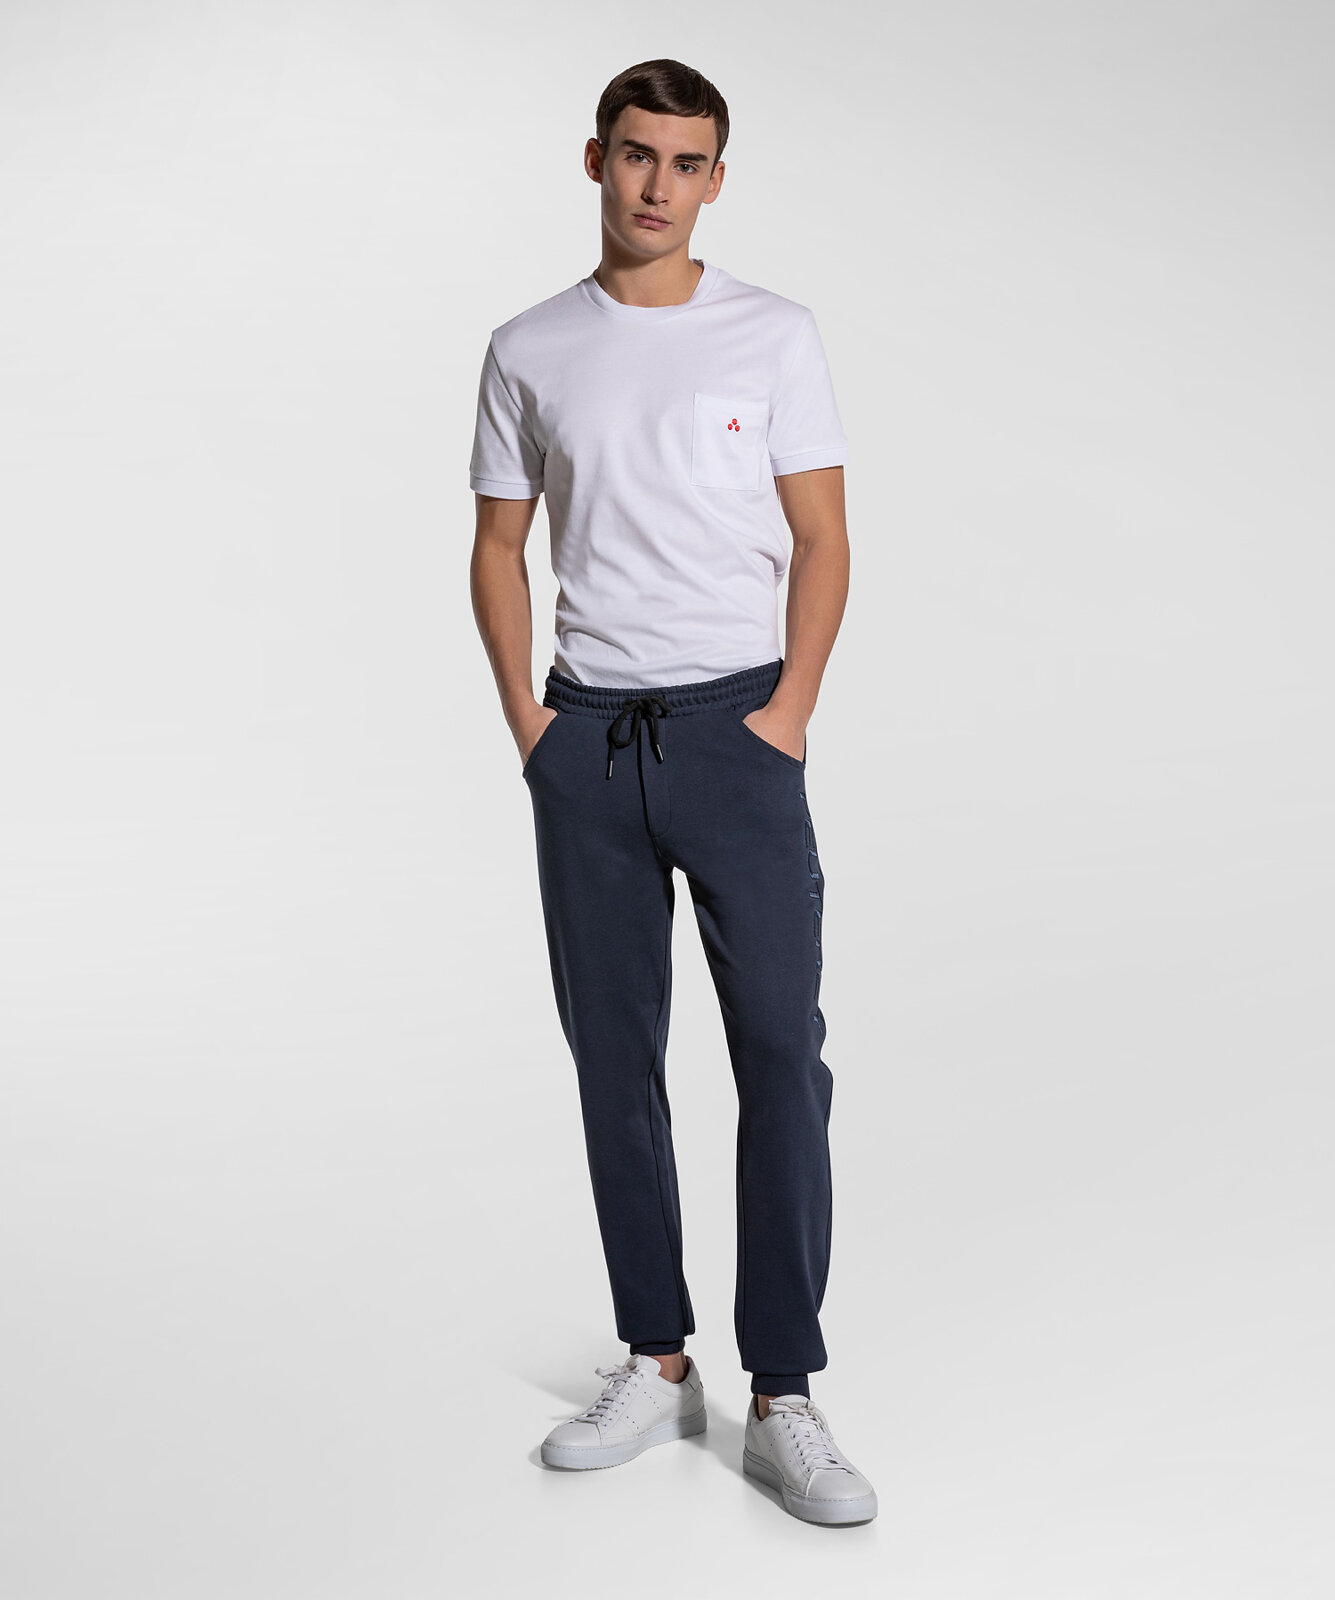 Comfortable And Soft Sweatpants - Peuterey